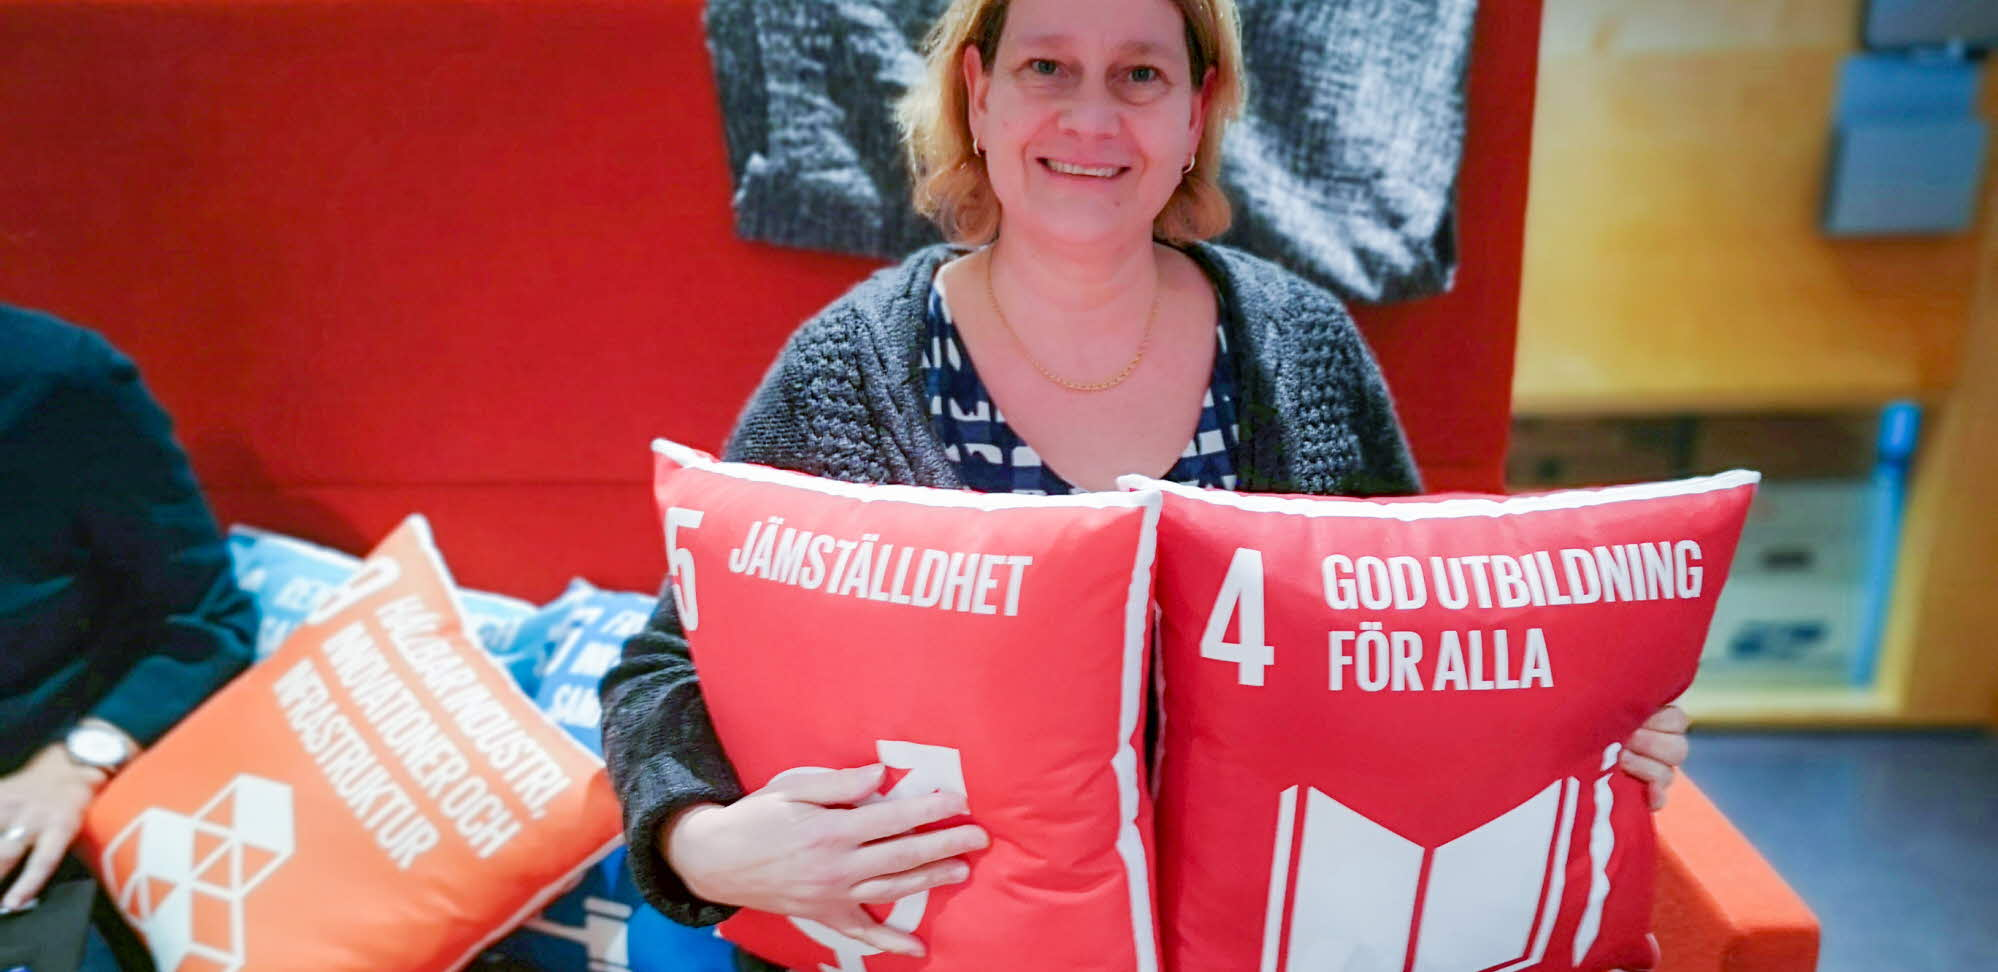 cushions with equality messages